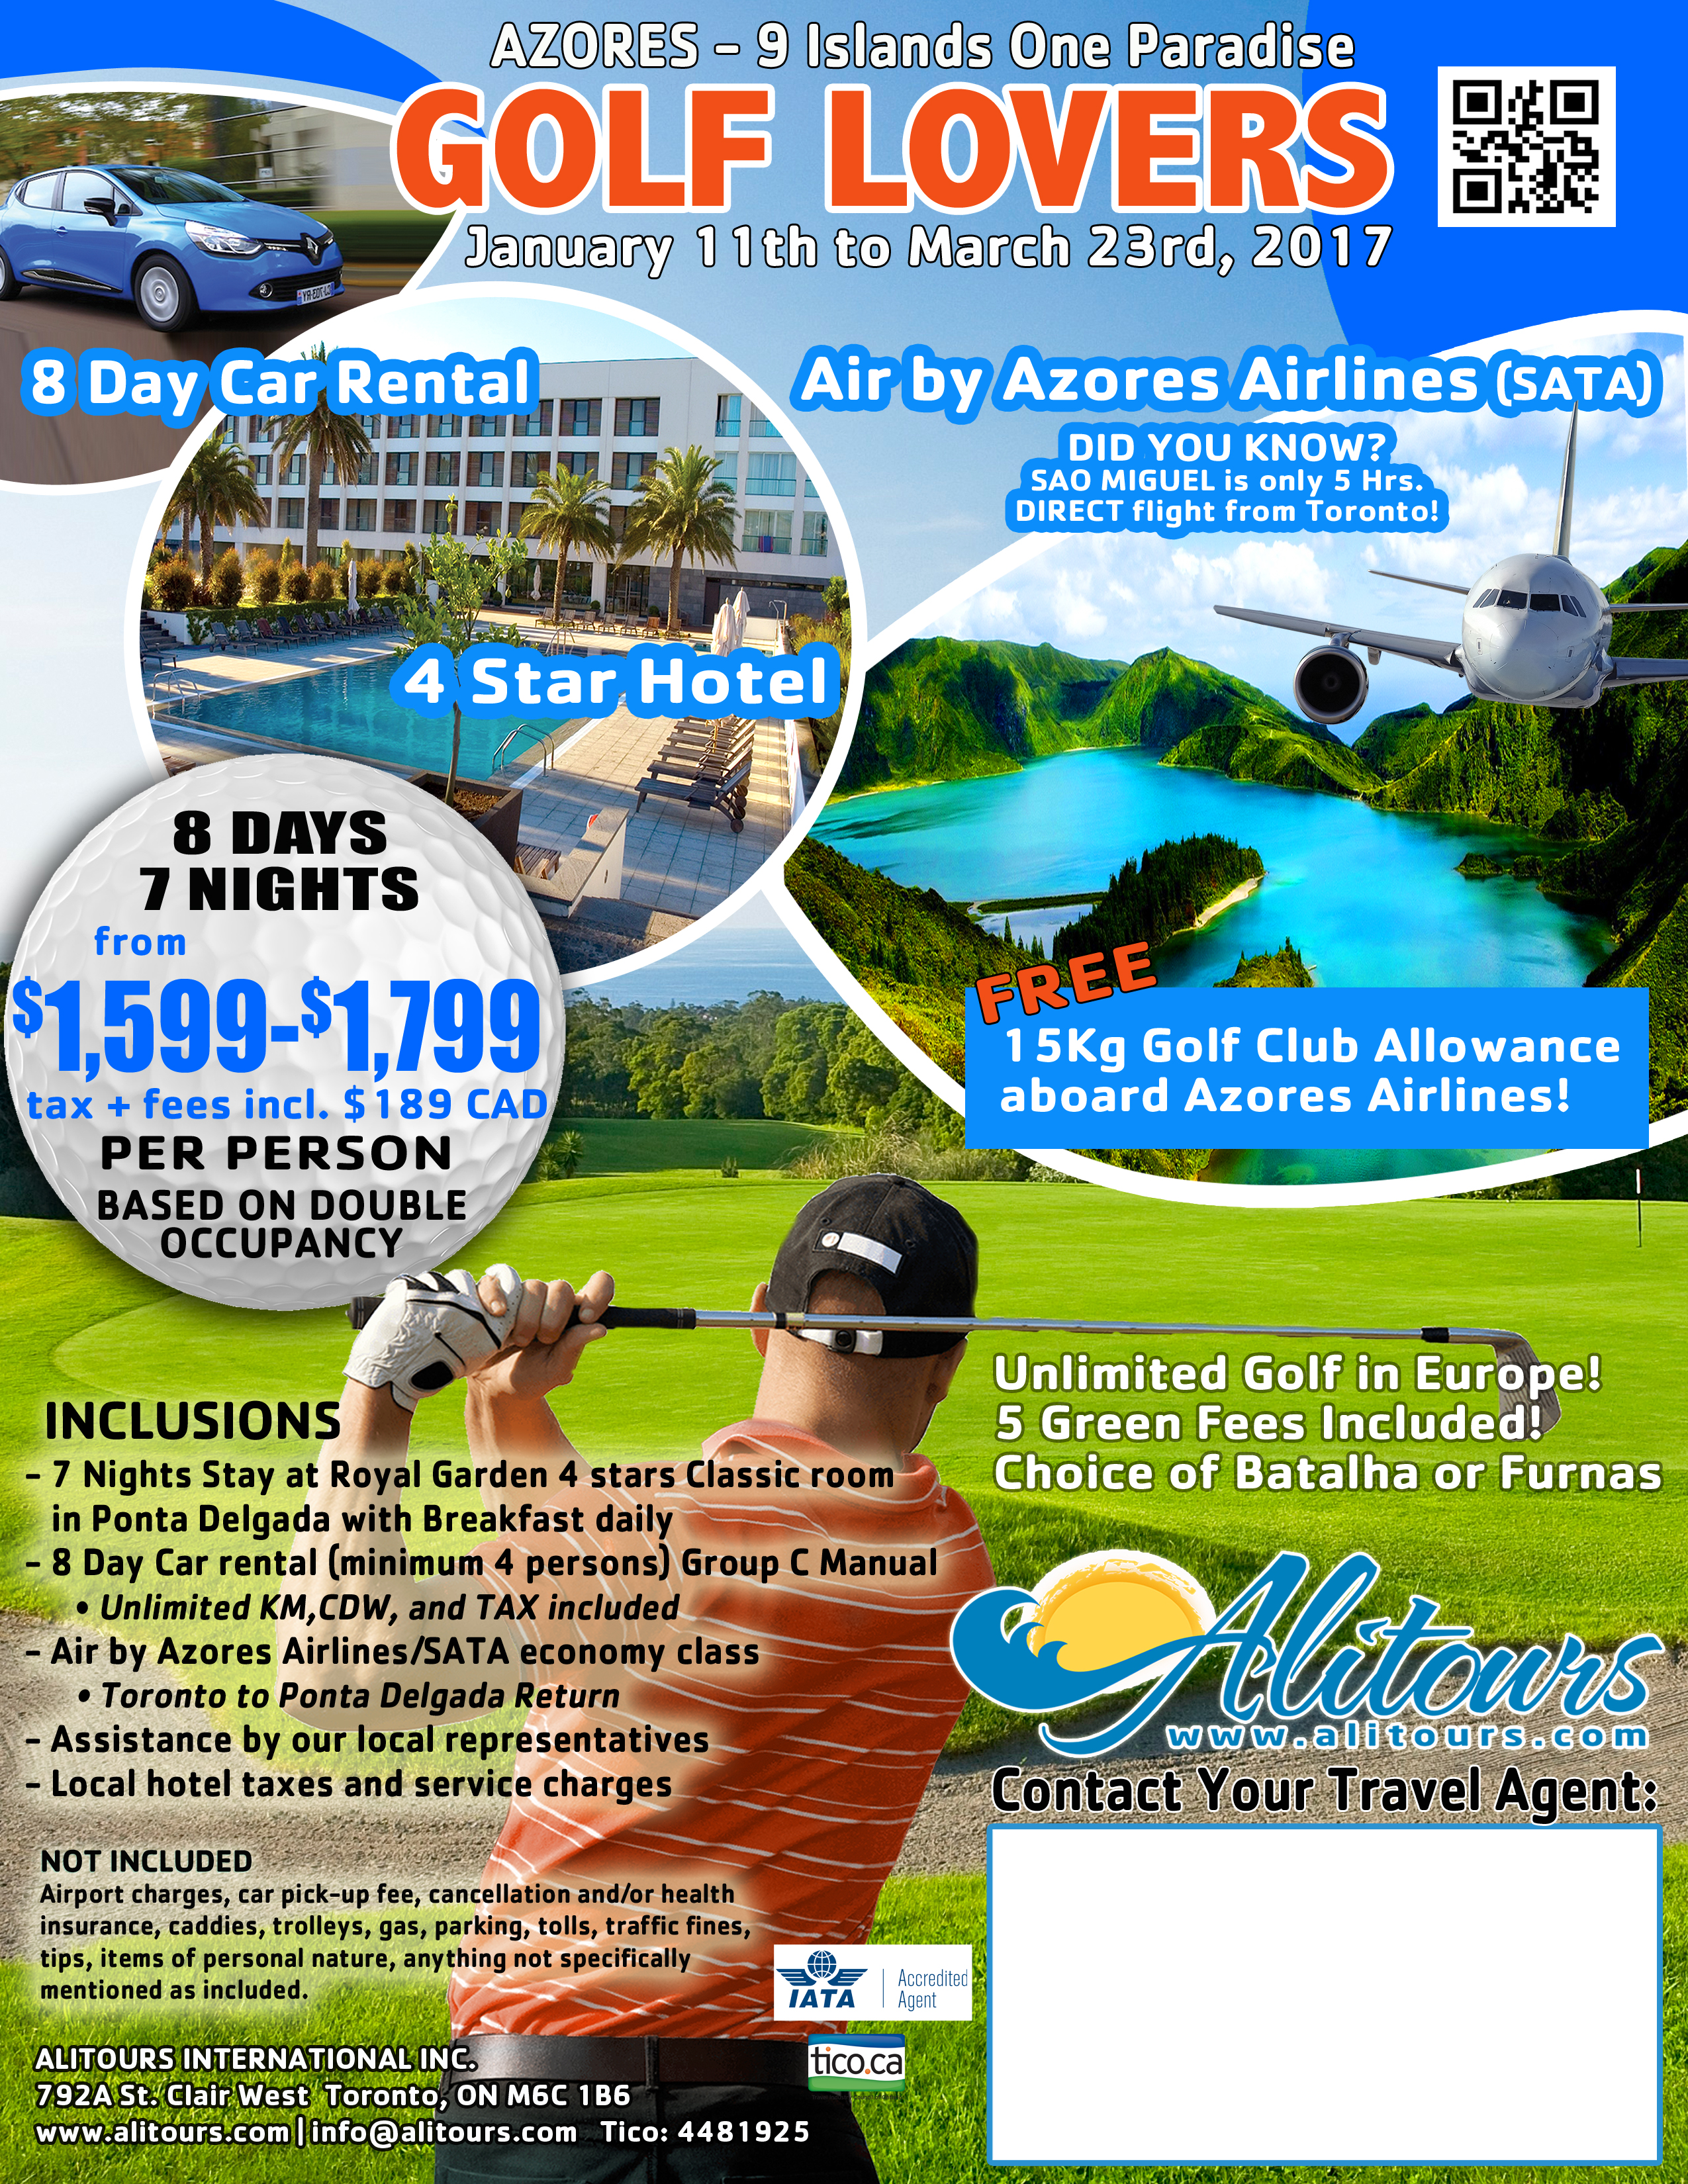 Azores Golf Lovers